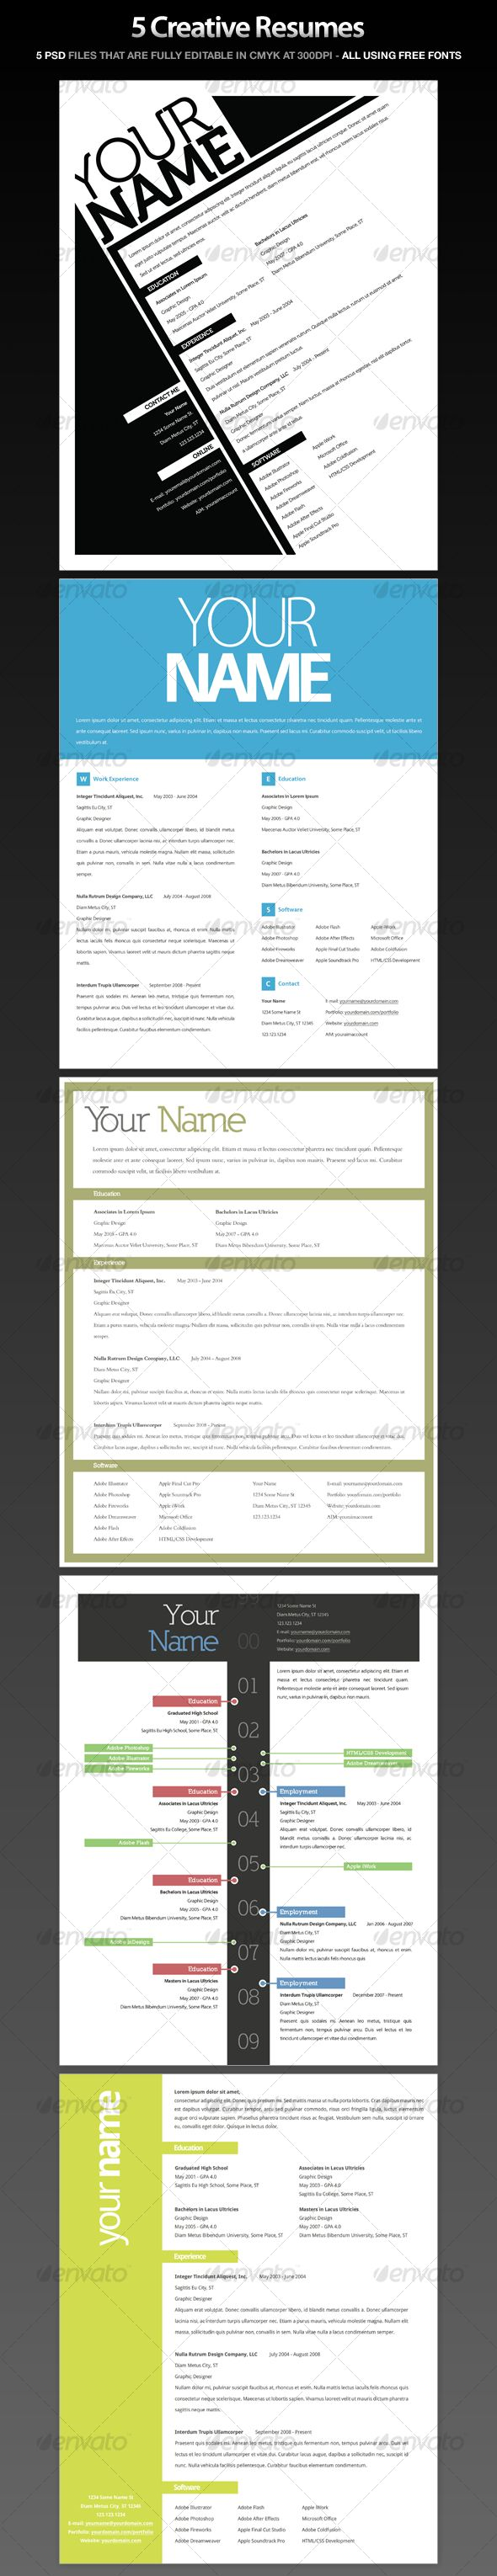 Resumes (5 Pack) | Filing, Template and Helpful hints